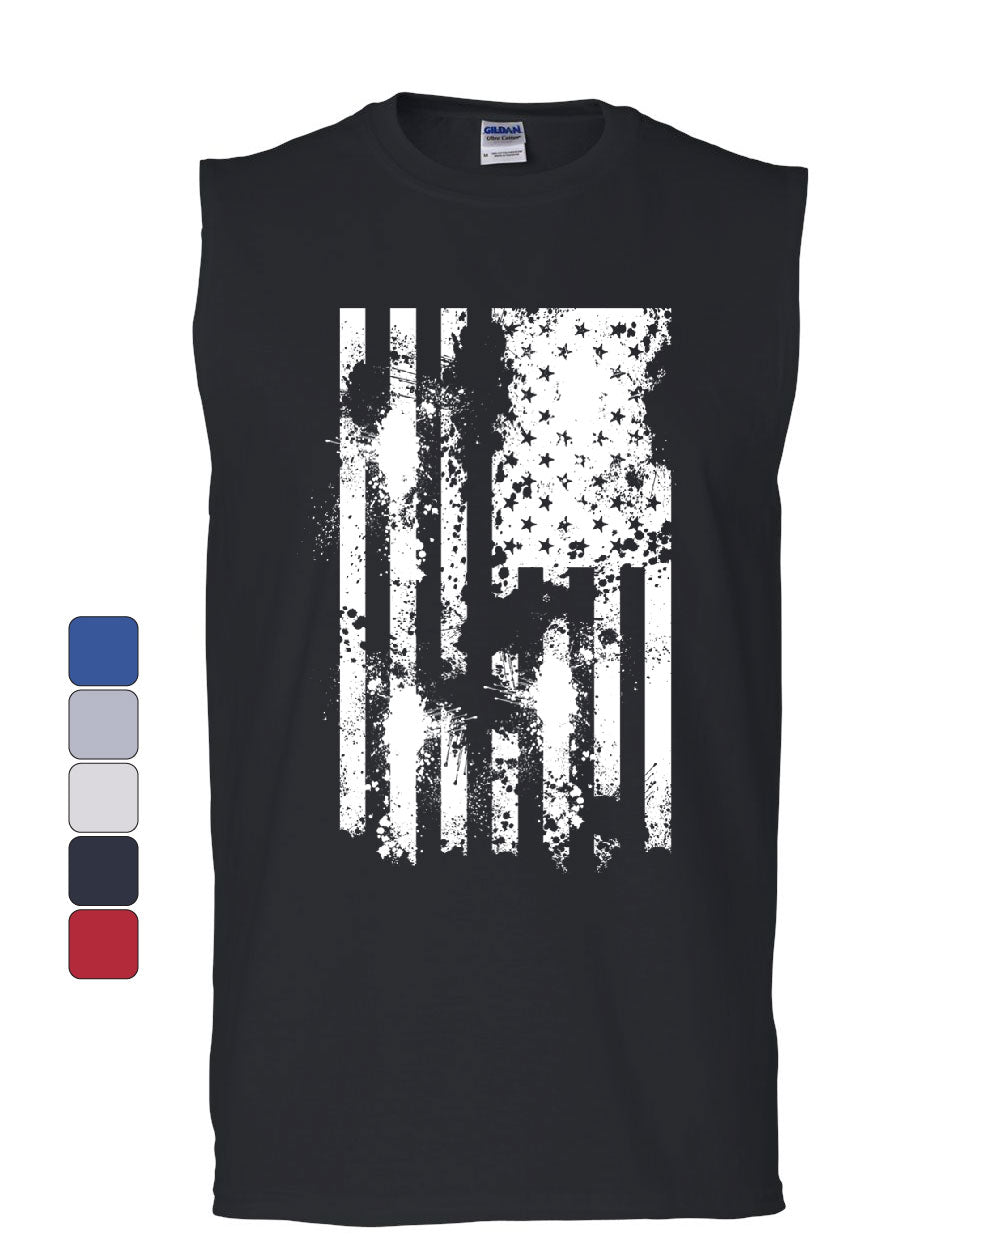 f56f9bbad8 American Flag Muscle Shirt Patriot Stars and Stripes USA 4th of July  Sleeveless